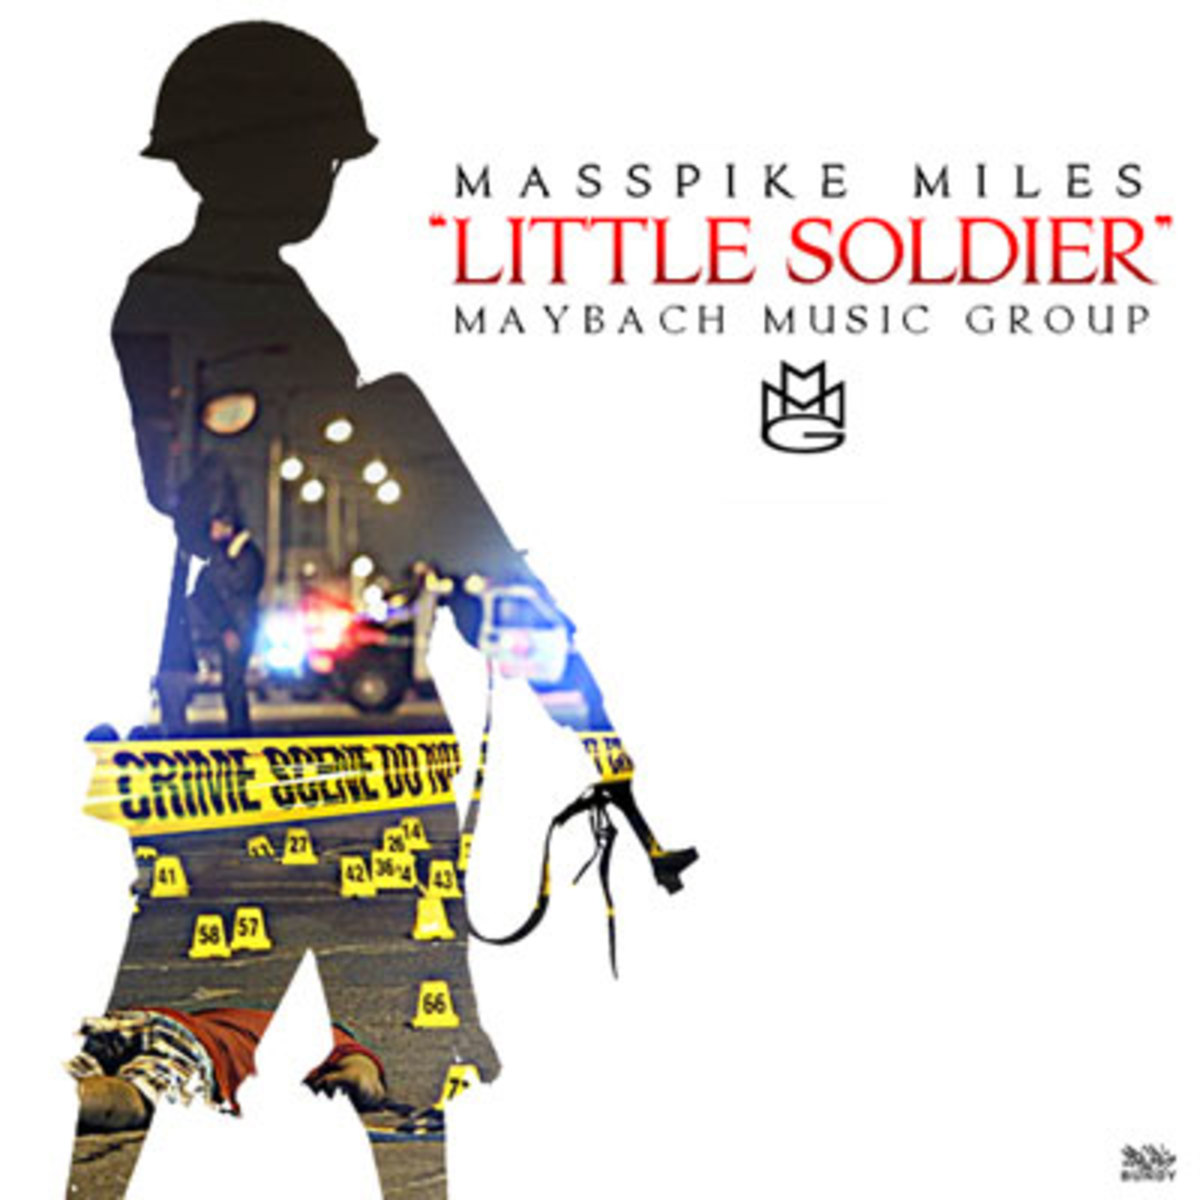 masspikemiles-littlesoldier.jpg